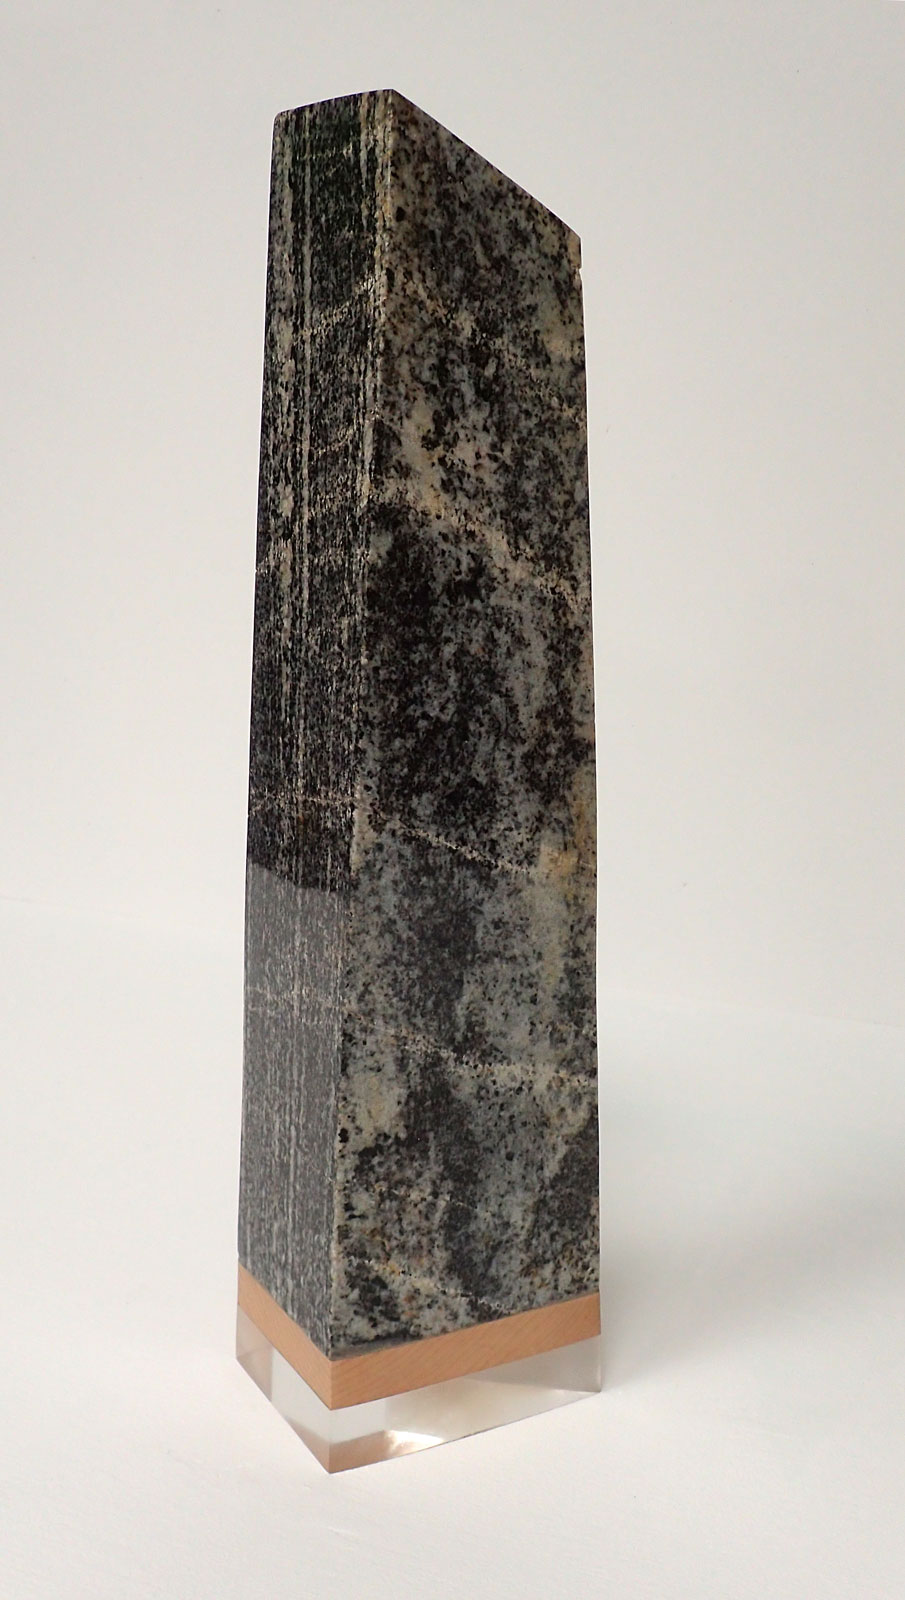 Standing Stone - 2017, Lewisian gneiss, hardwood and acrylic, 54 x 16 x 10 cm – 10 kg. £1300